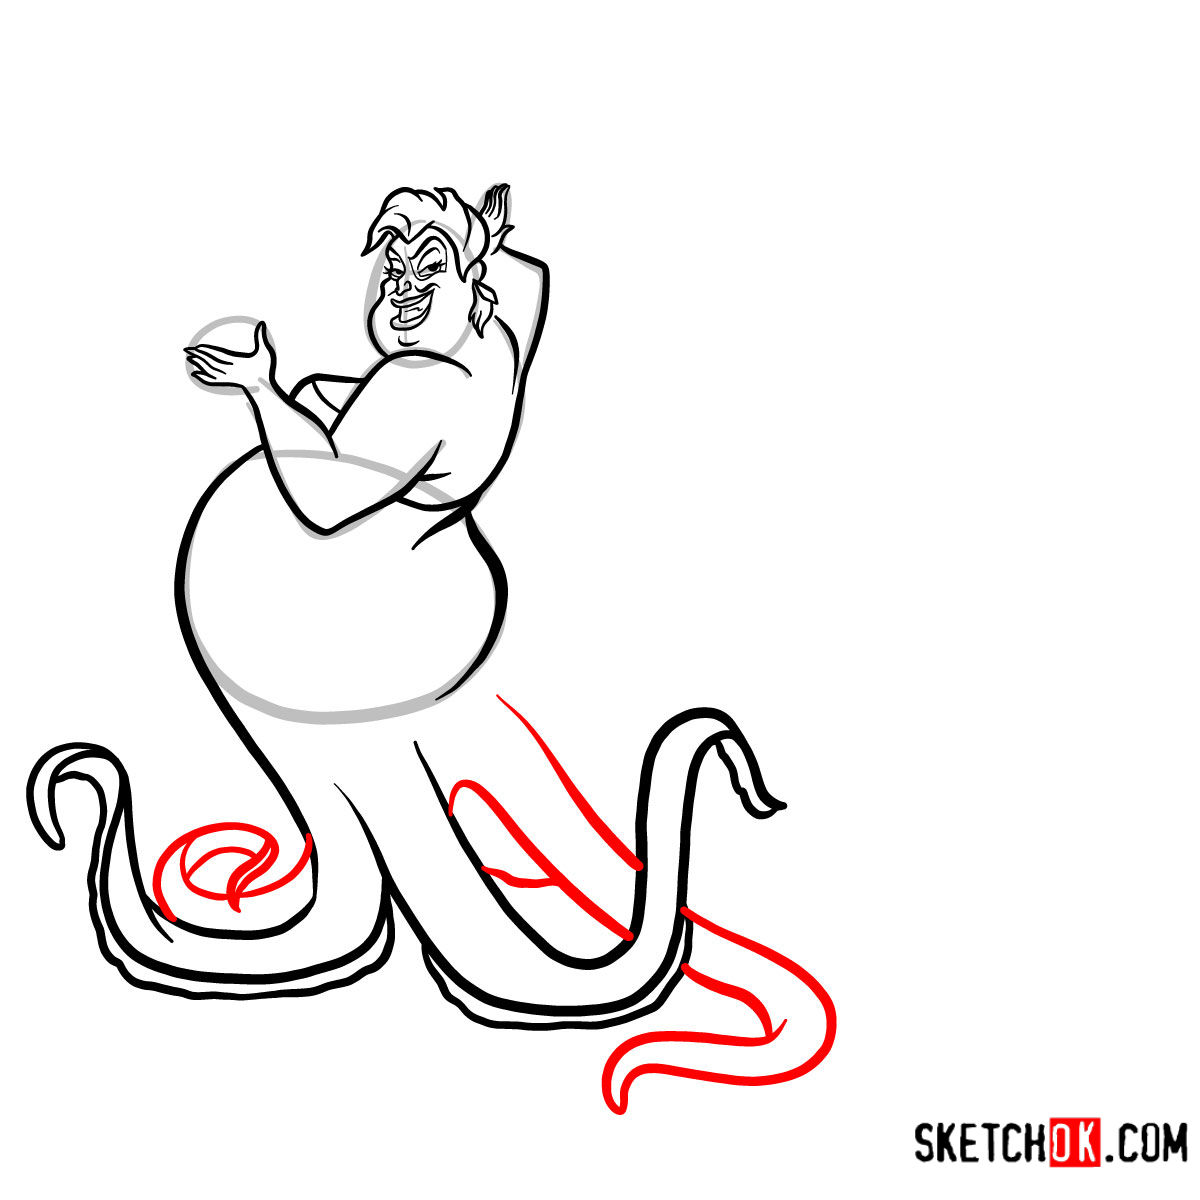 How to draw Ursula | The Little Mermaid - step 09